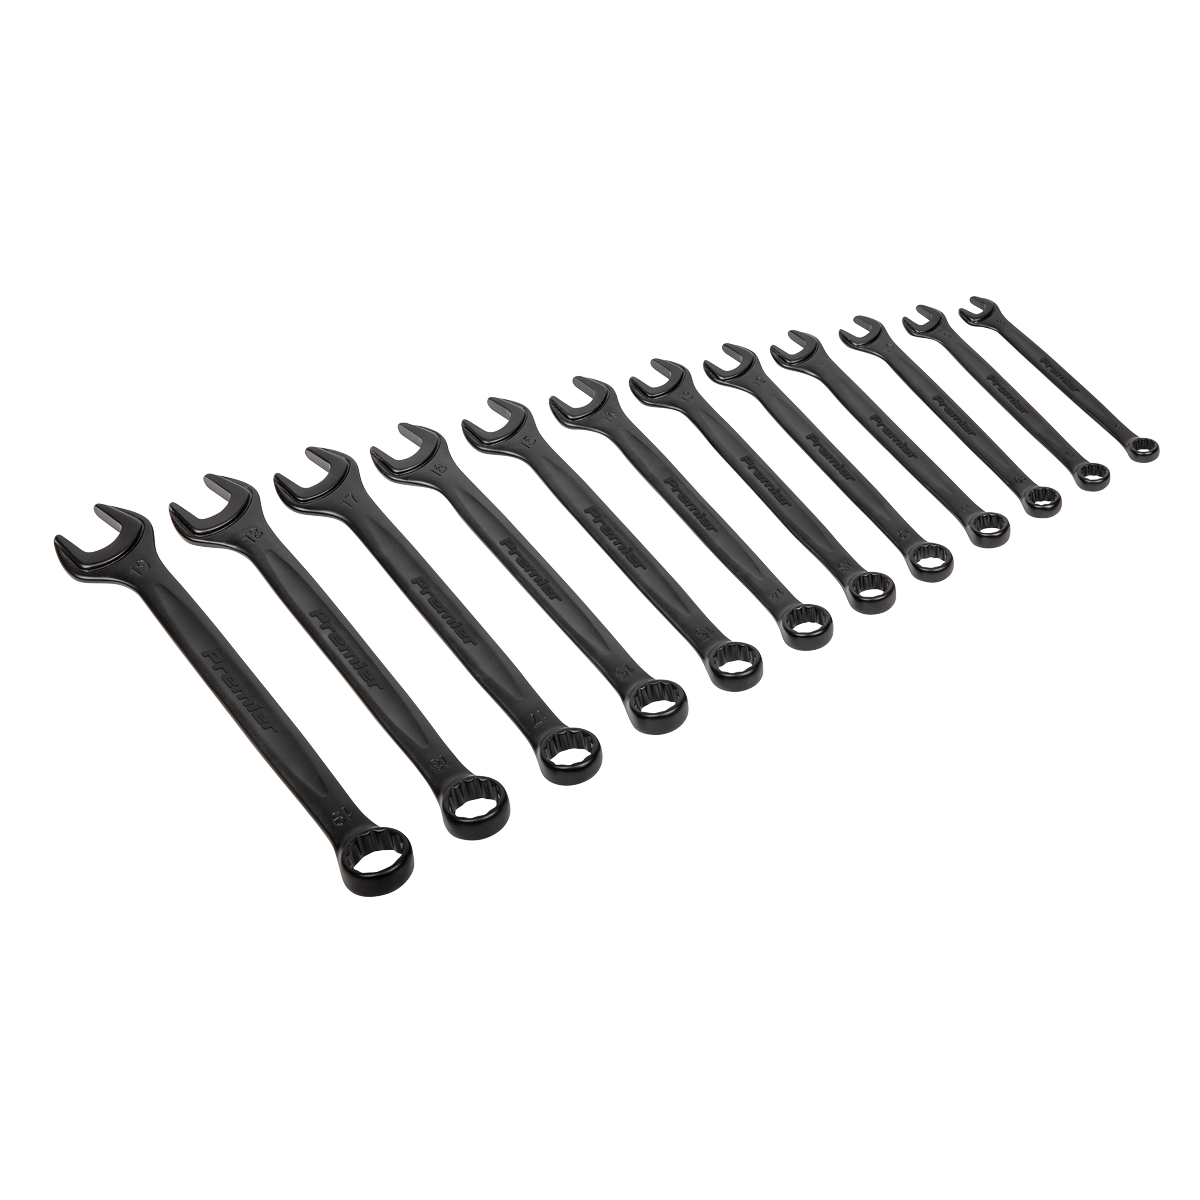 Combination Spanner Set 12pc Metric - Black Series